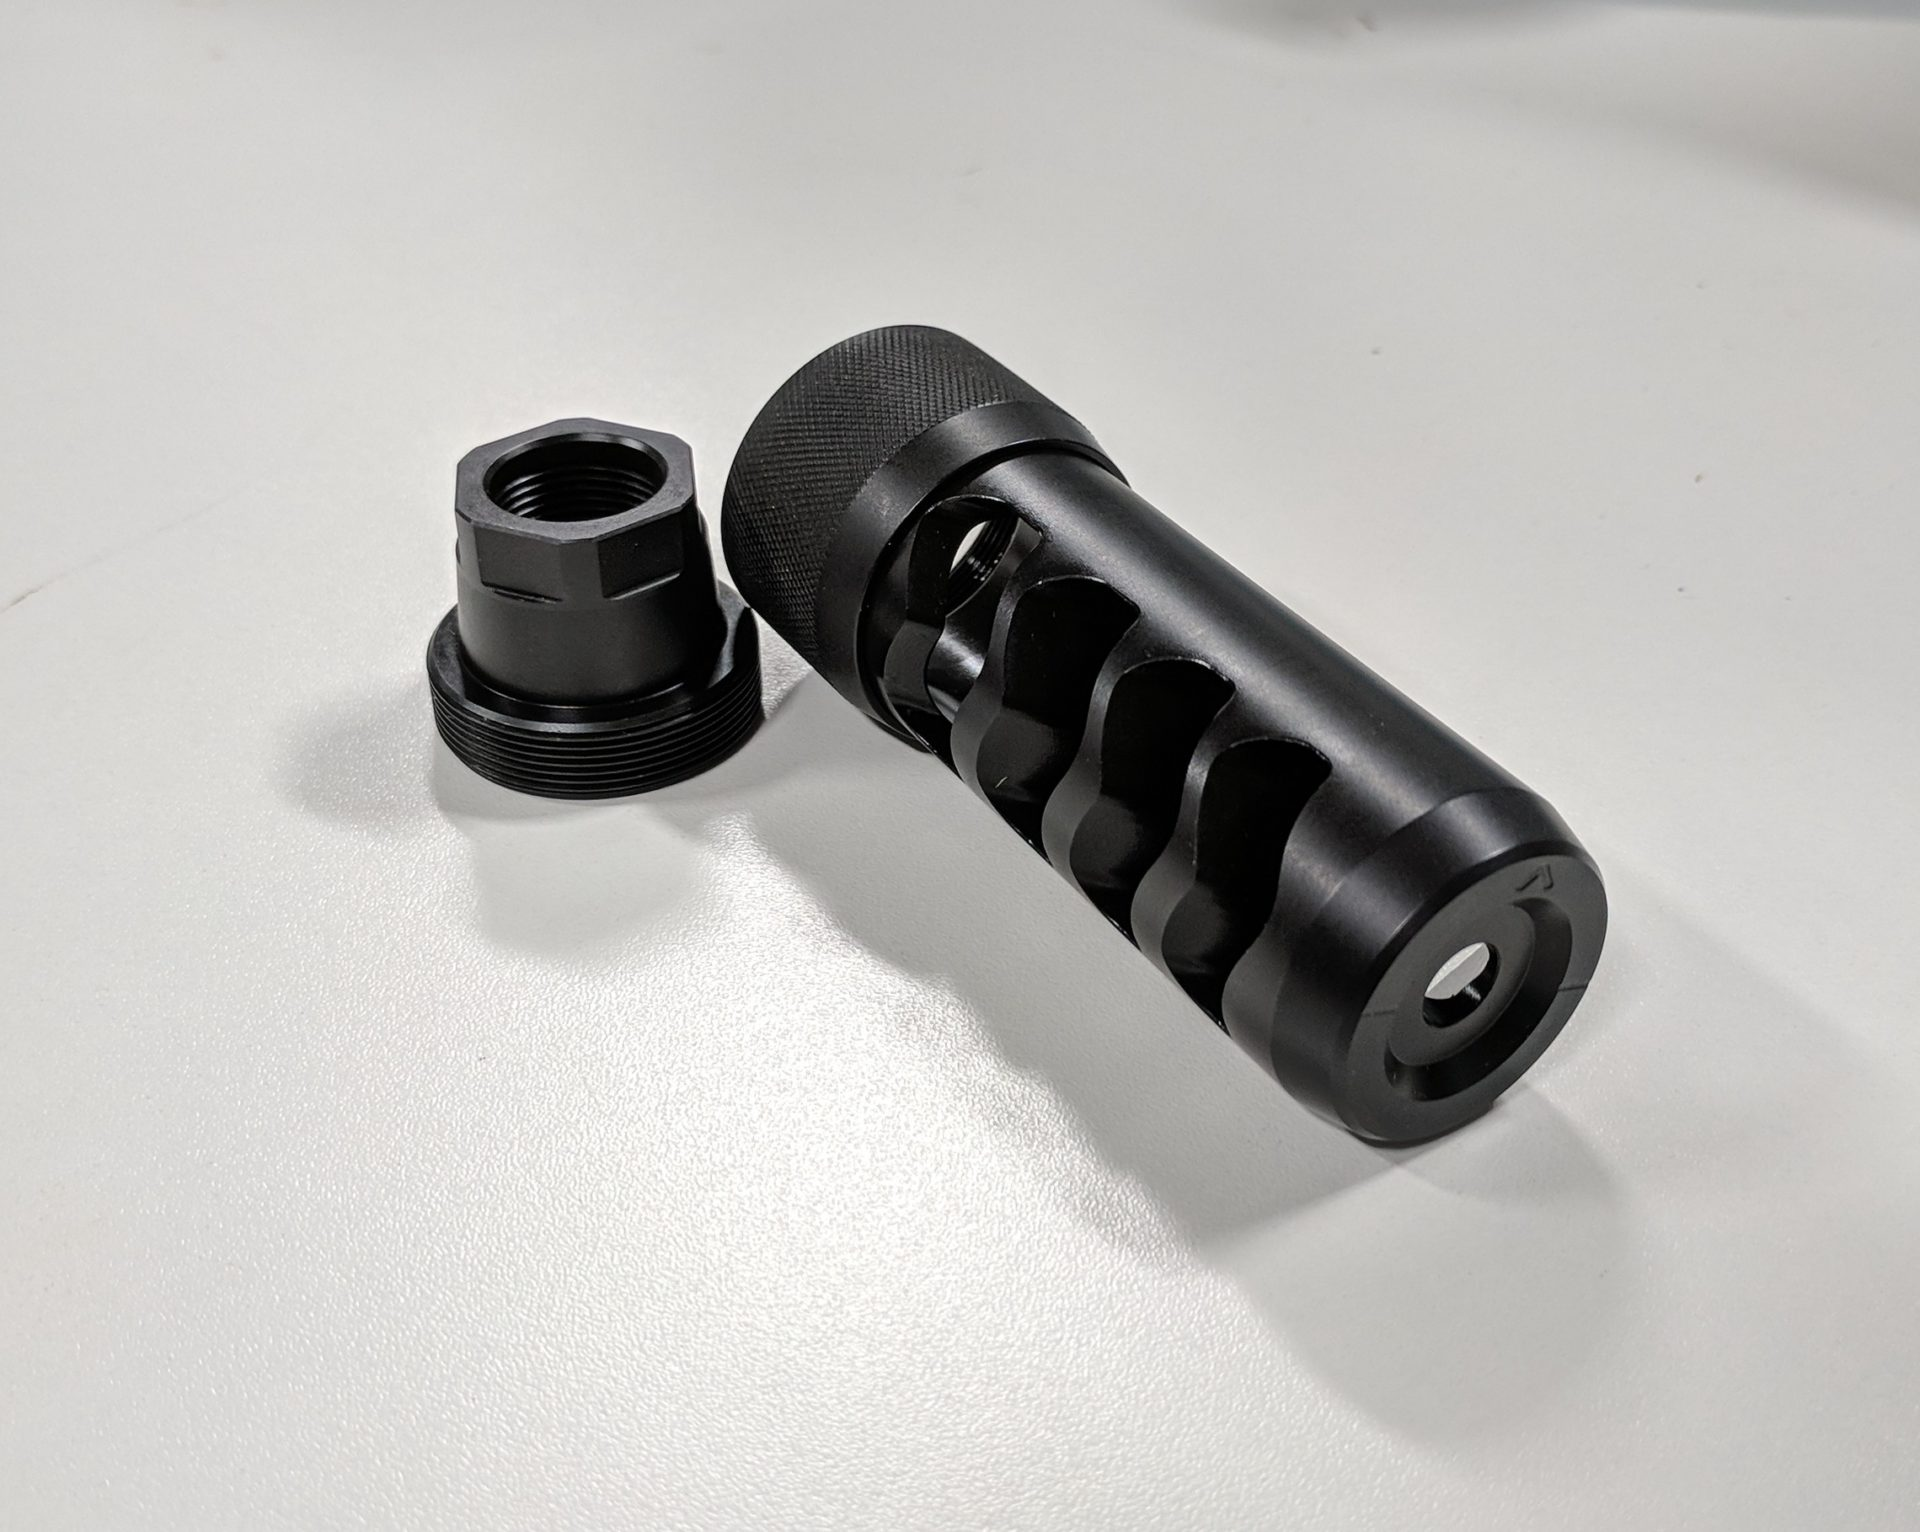 Sidewinder Magnum Self Timing Muzzle Brake